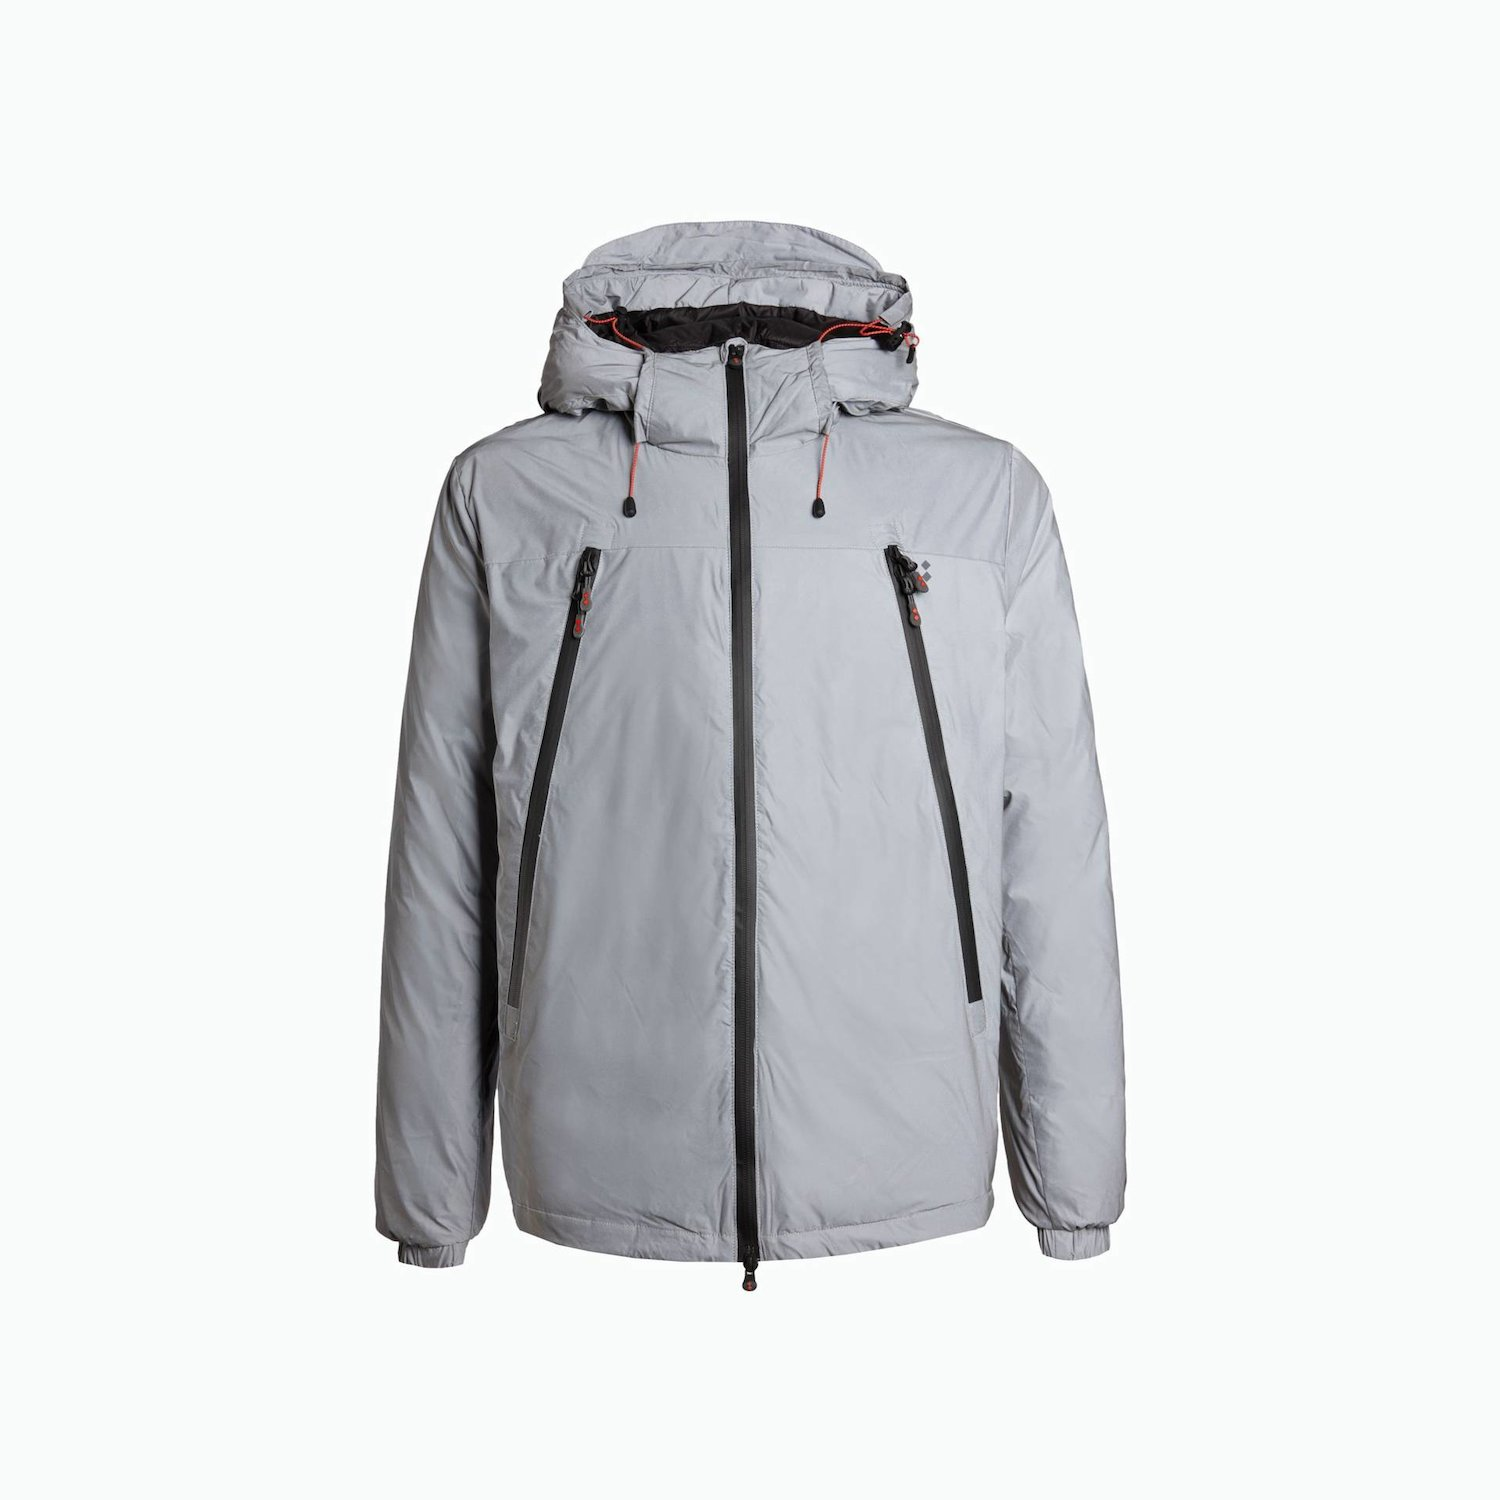 Lighterman jacket - Silver Reflex